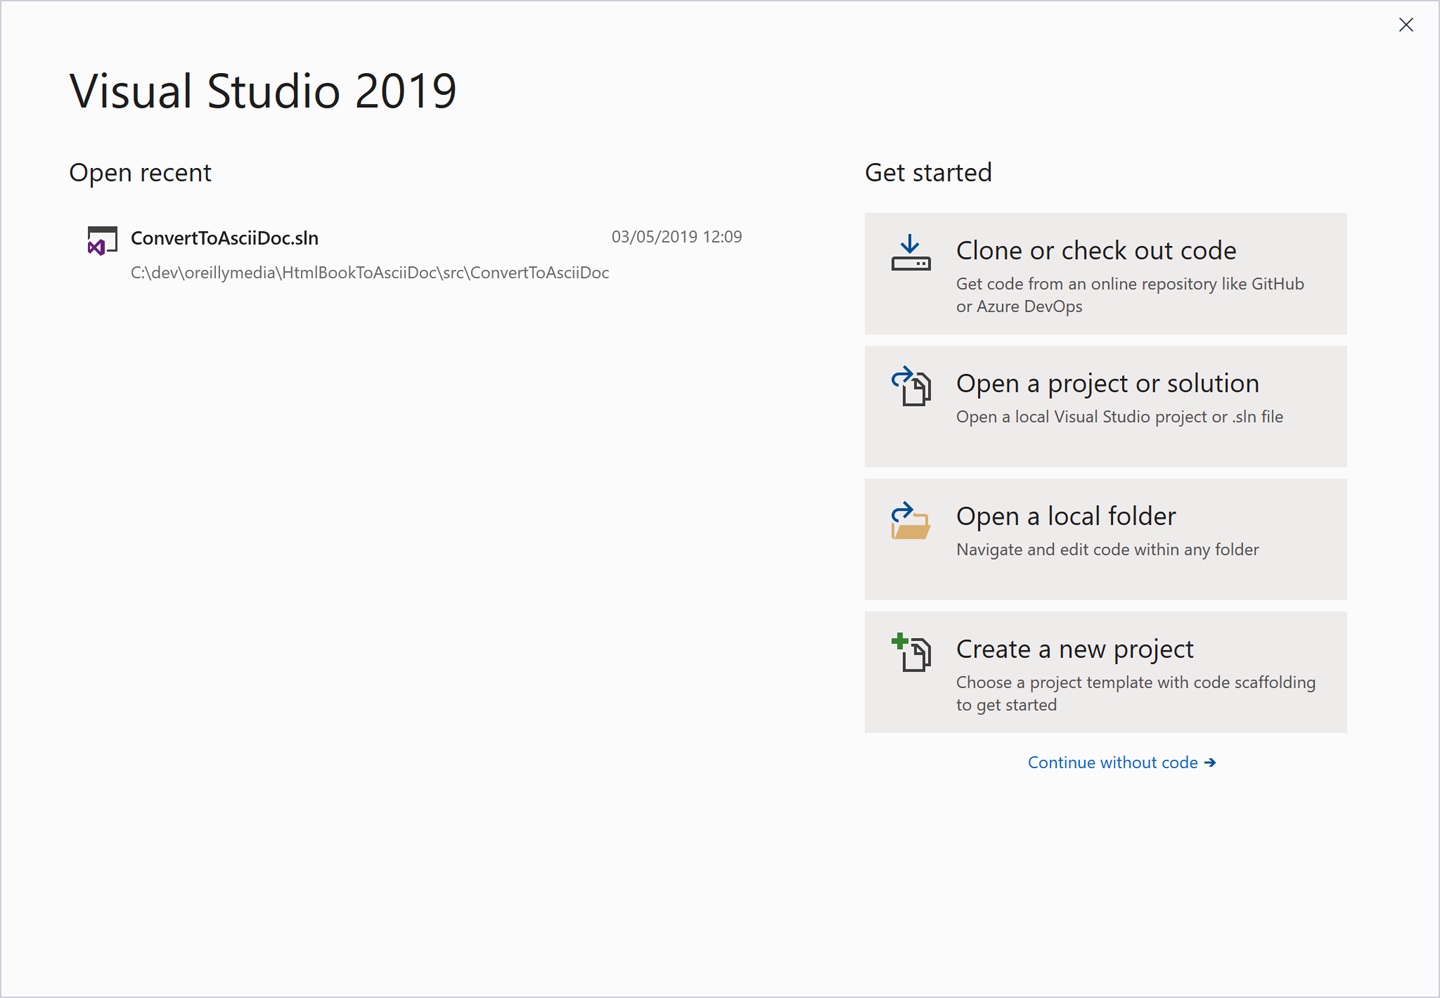 Visual Studio's Get started window